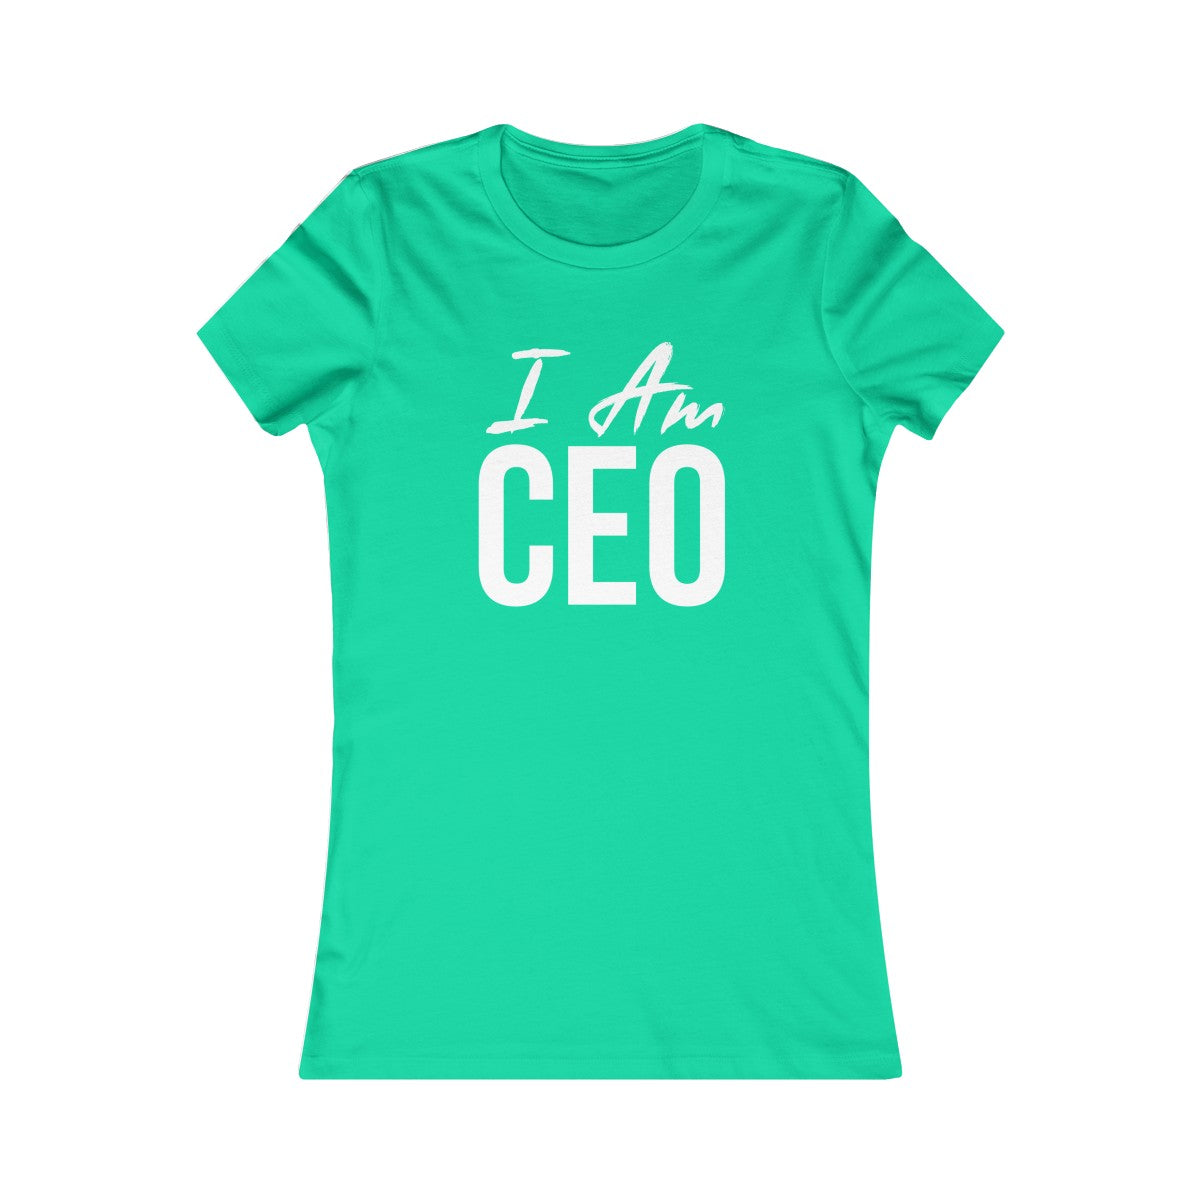 Women's I AM CEO Tee - Peyticakes